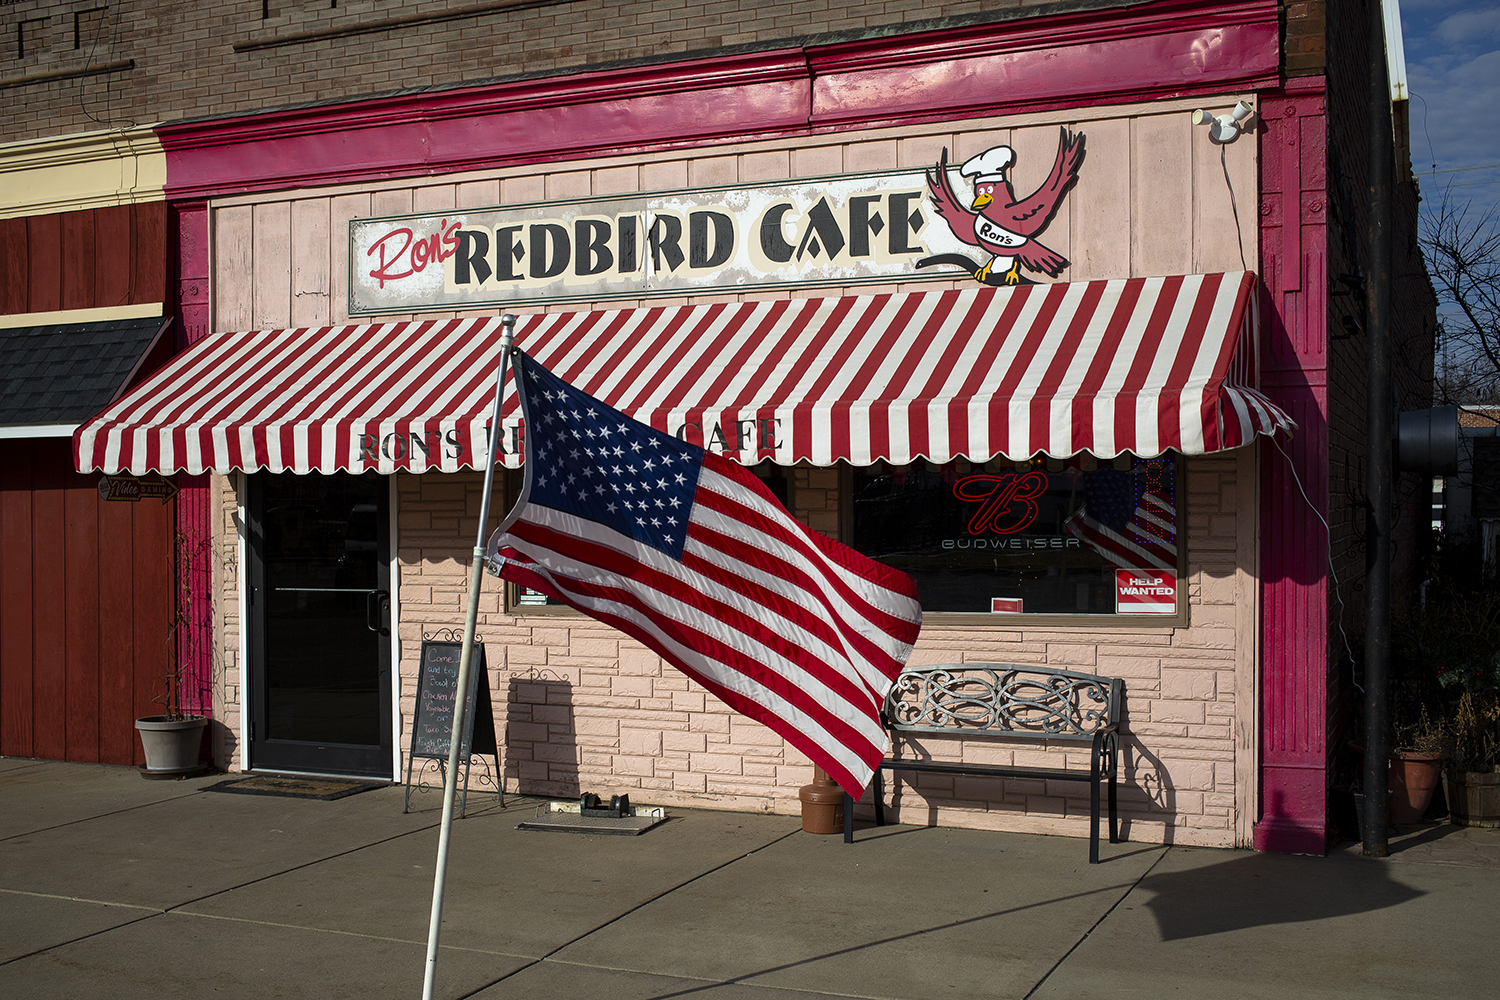 The Stars and Stripes fly in front of Ron's Redbird Cafe in Girard, Dec. 19, 2018. [Rich Saal/The State Journal-Register]